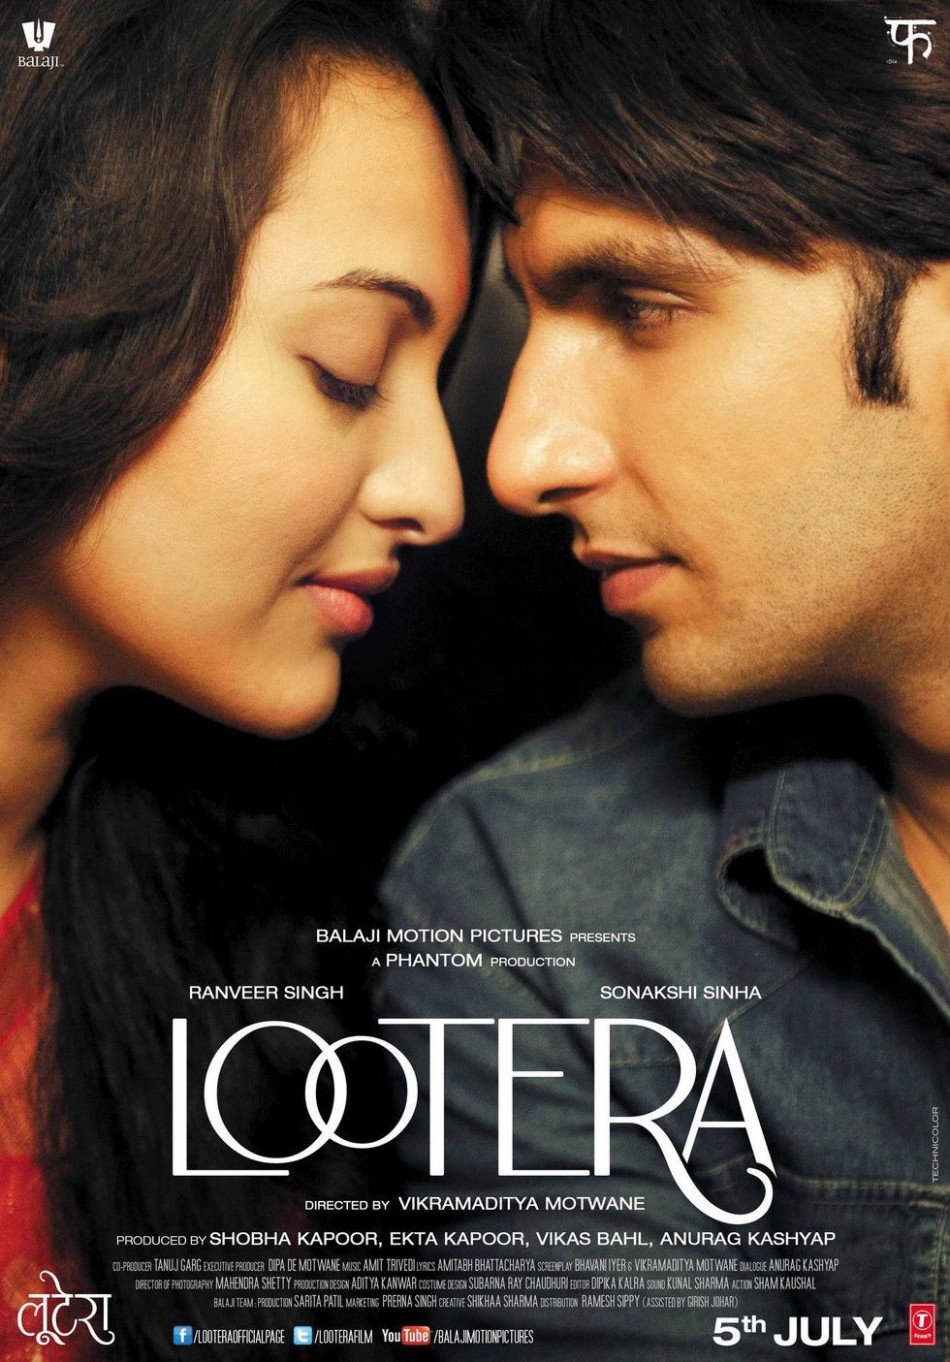 Lootera - Movie Poster #3 | Bollywood Movie Posters in ..